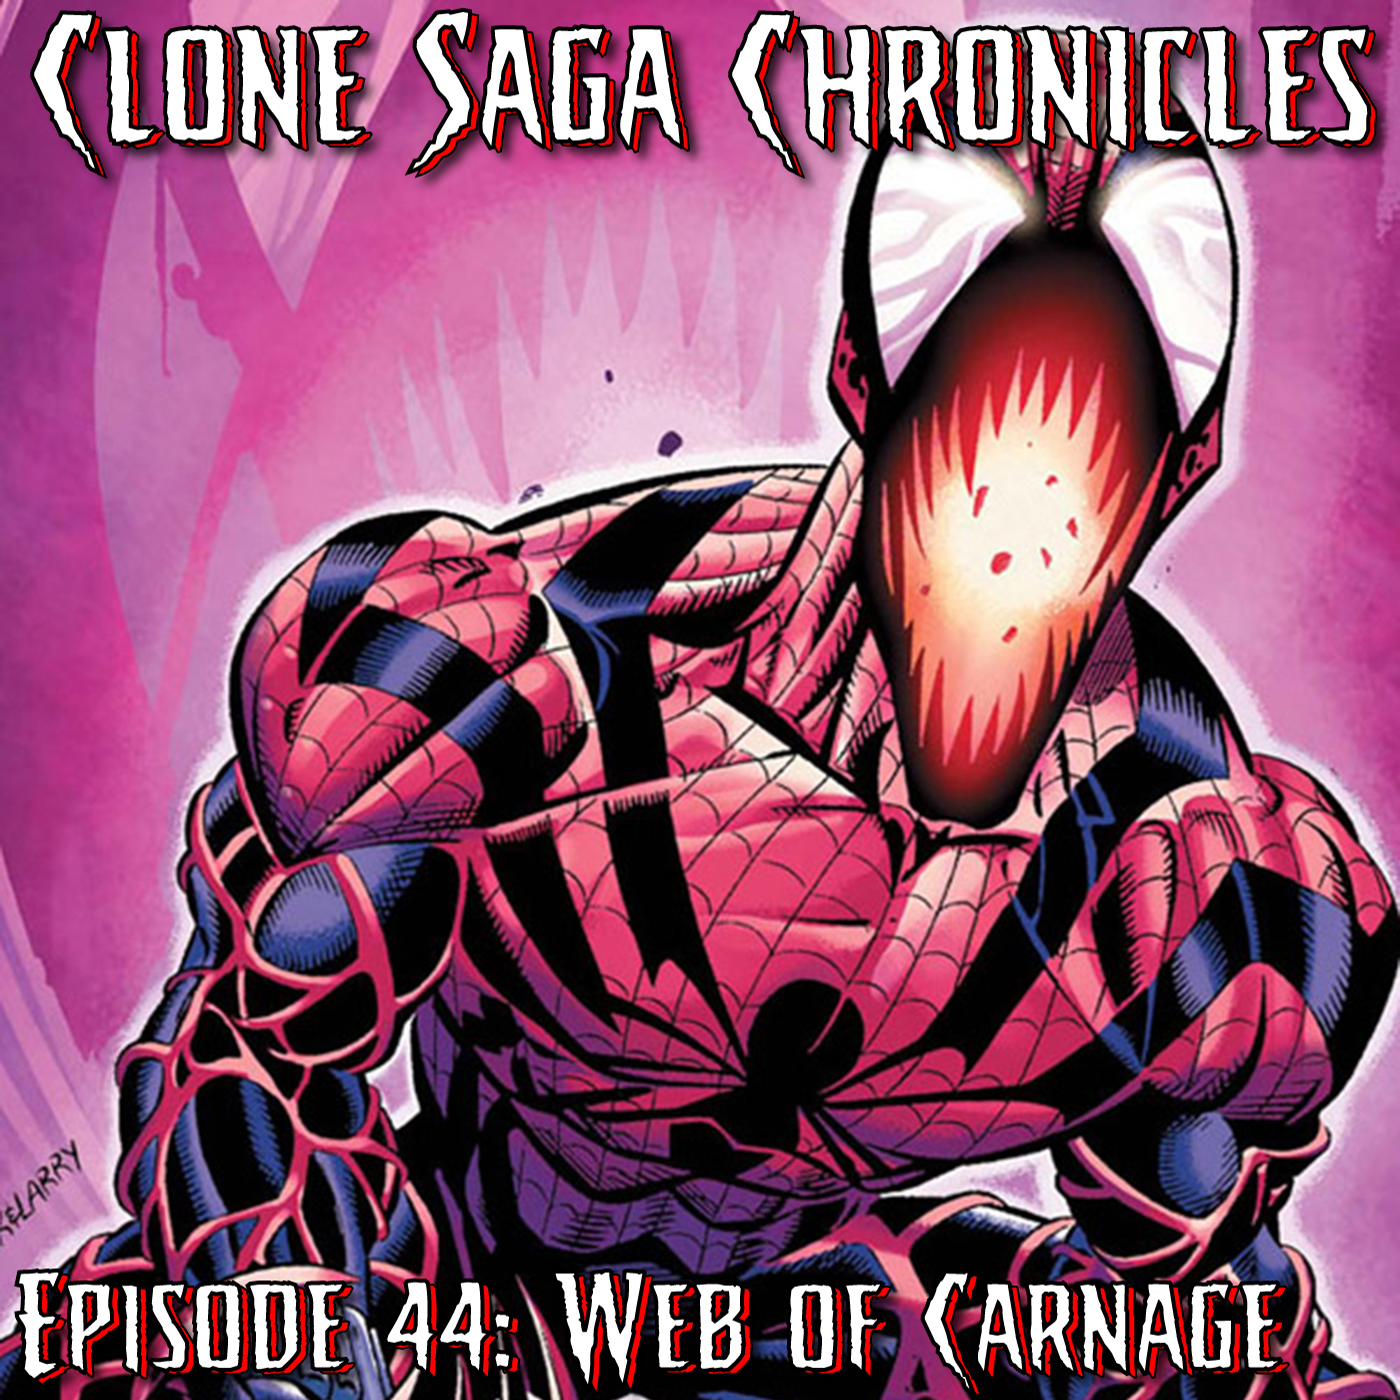 CSC Episode 44: Web of Carnage (April 1995)